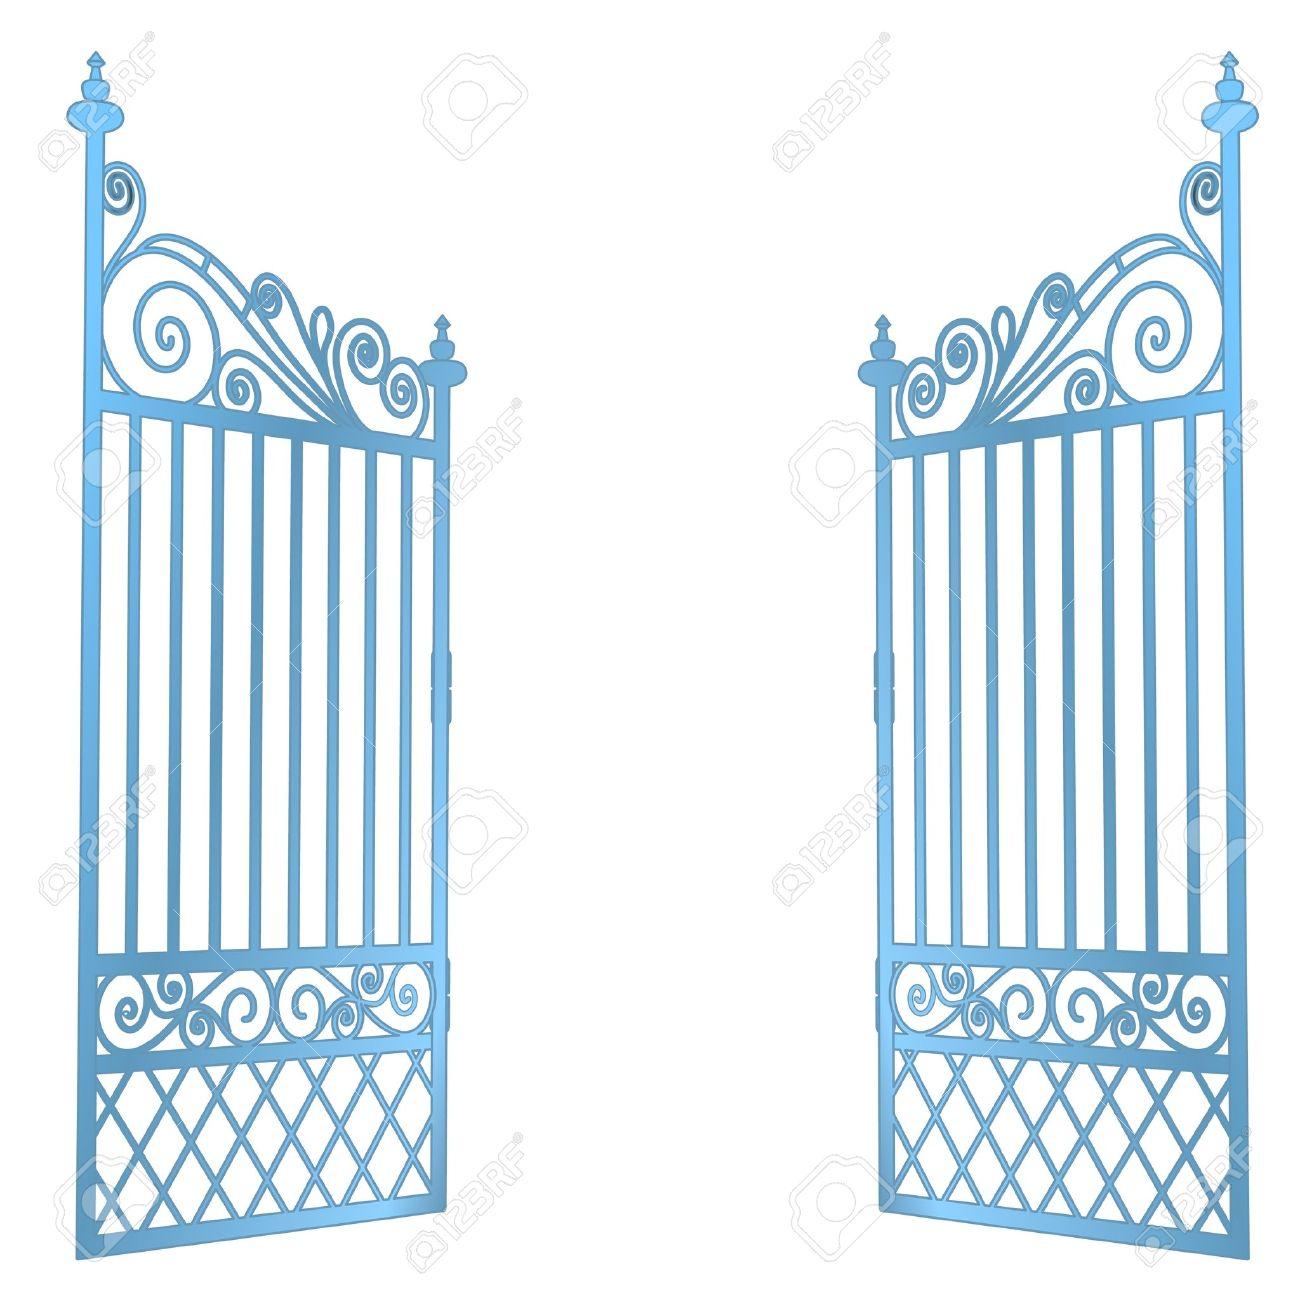 isolated steel decorated baroque open gate vector illustration